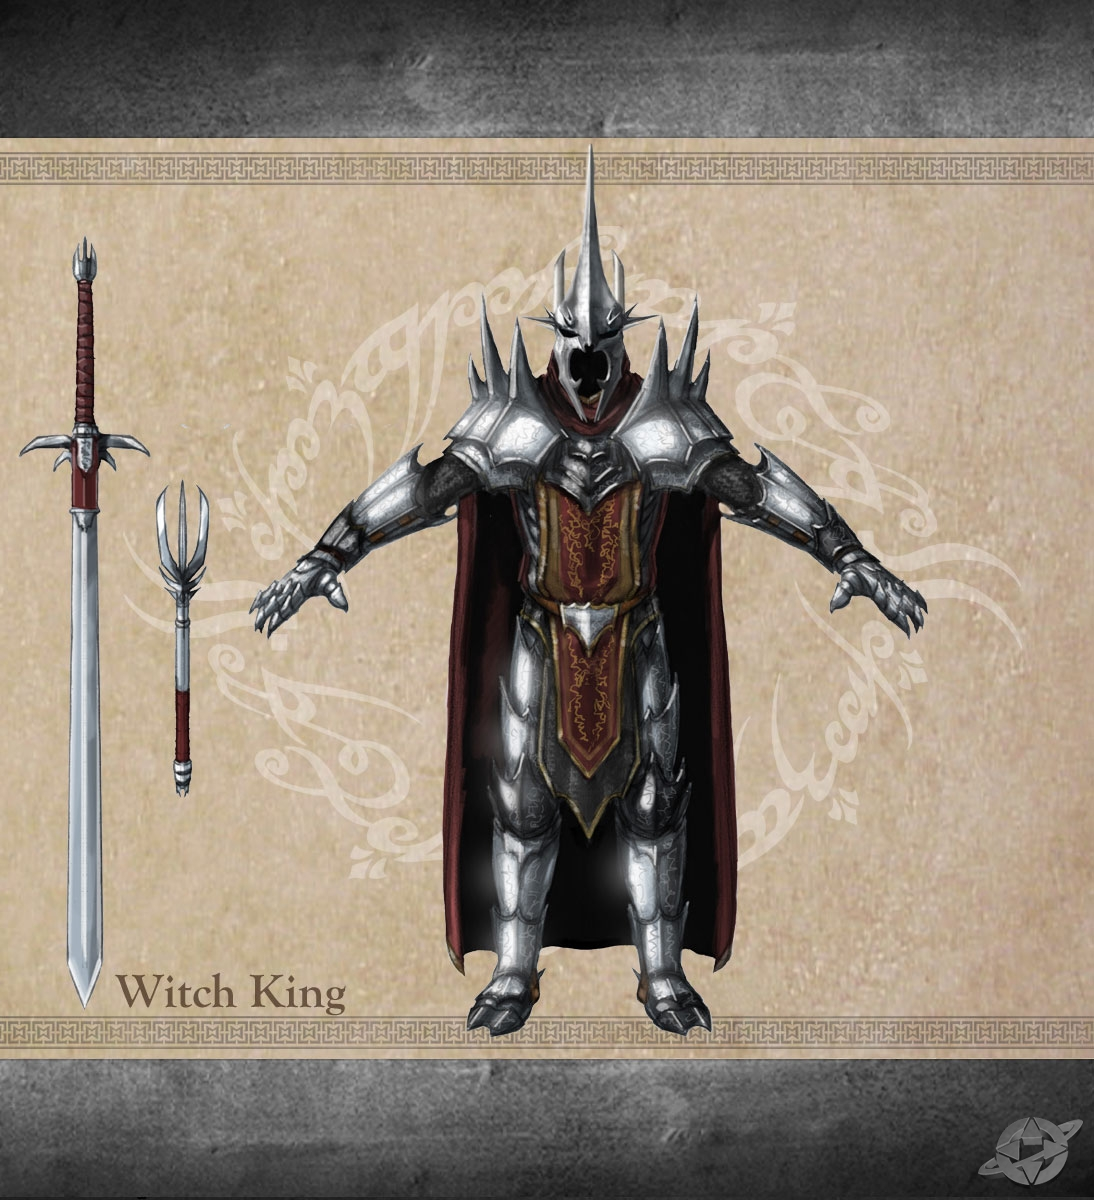 Witch-king Of Angmar - The Lord Of The Rings Wallpape